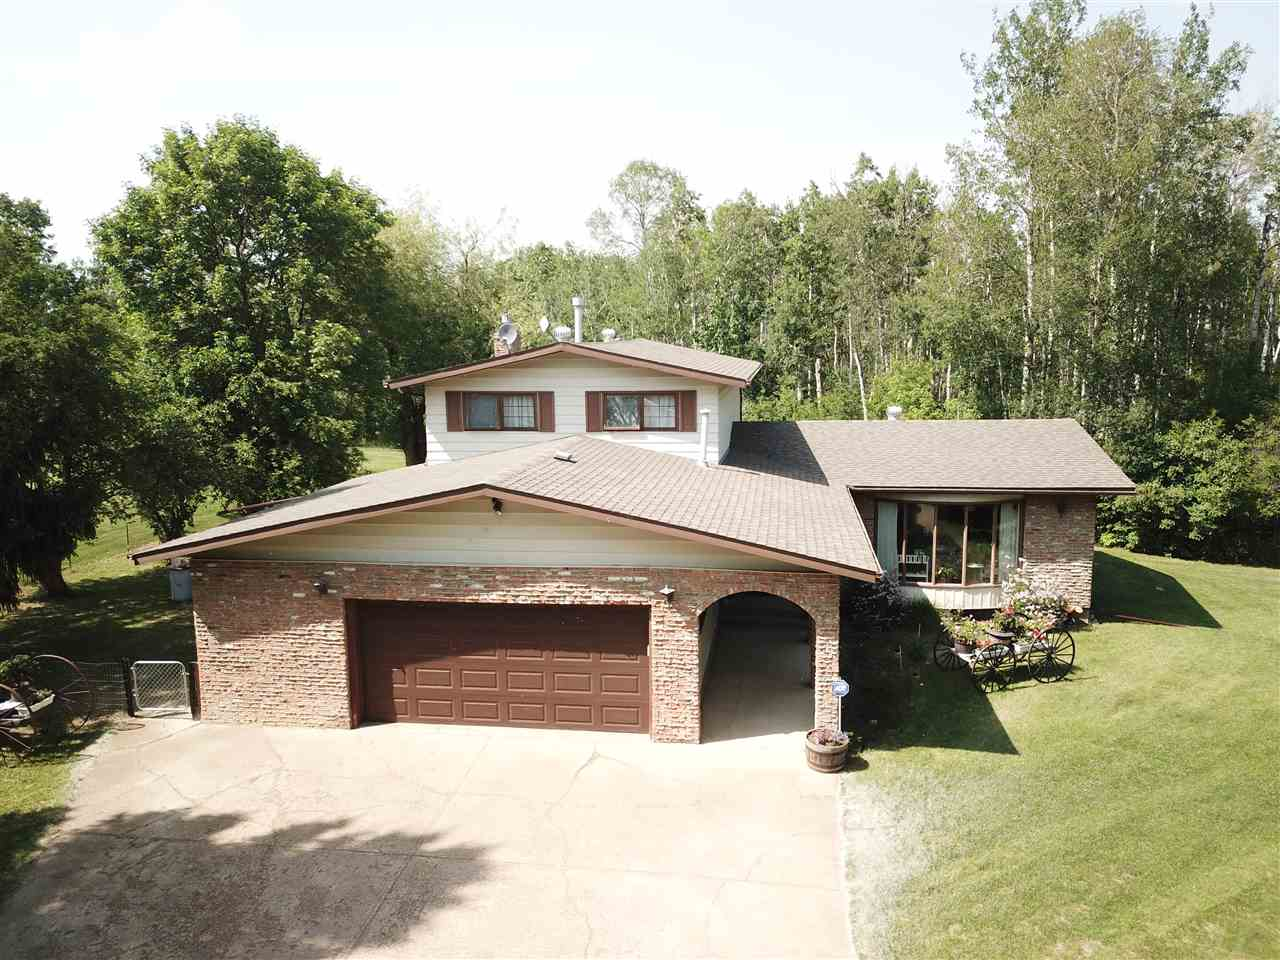 Main Photo: 21 53304 RGE RD 14 Road: Rural Parkland County House for sale : MLS®# E4113890